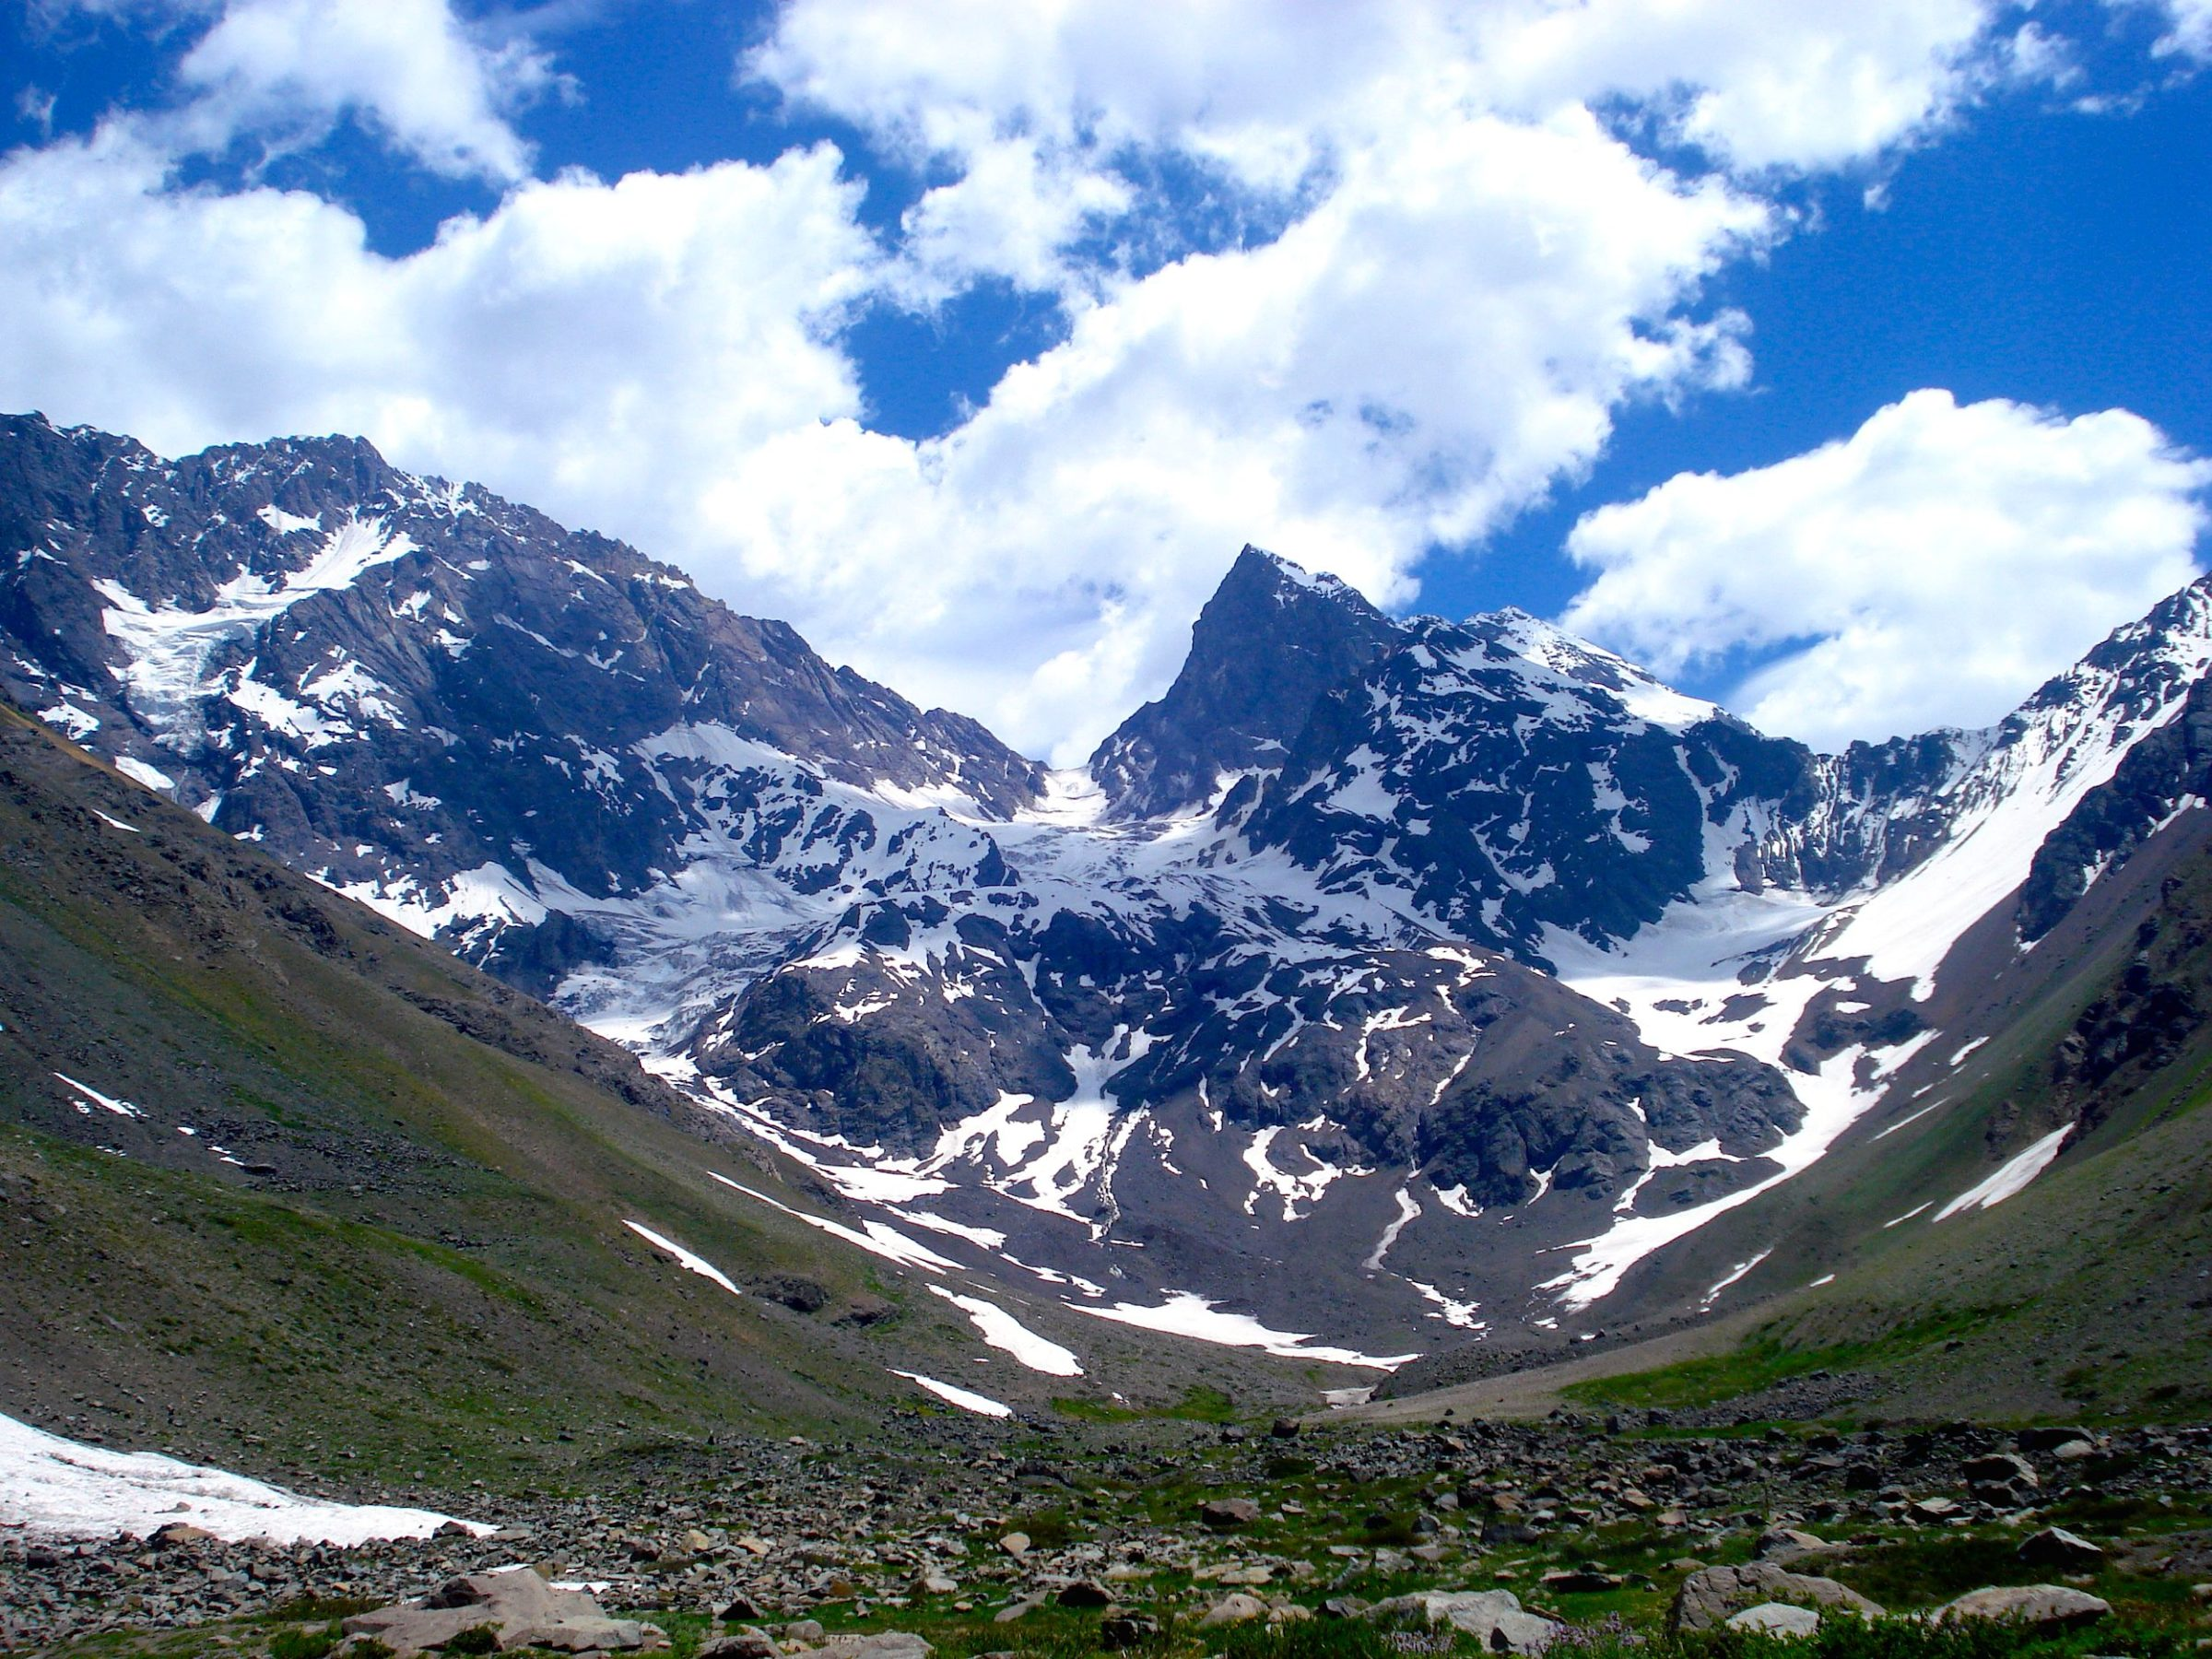 Valley with grass in the foreground and snow-capped mountains in the background